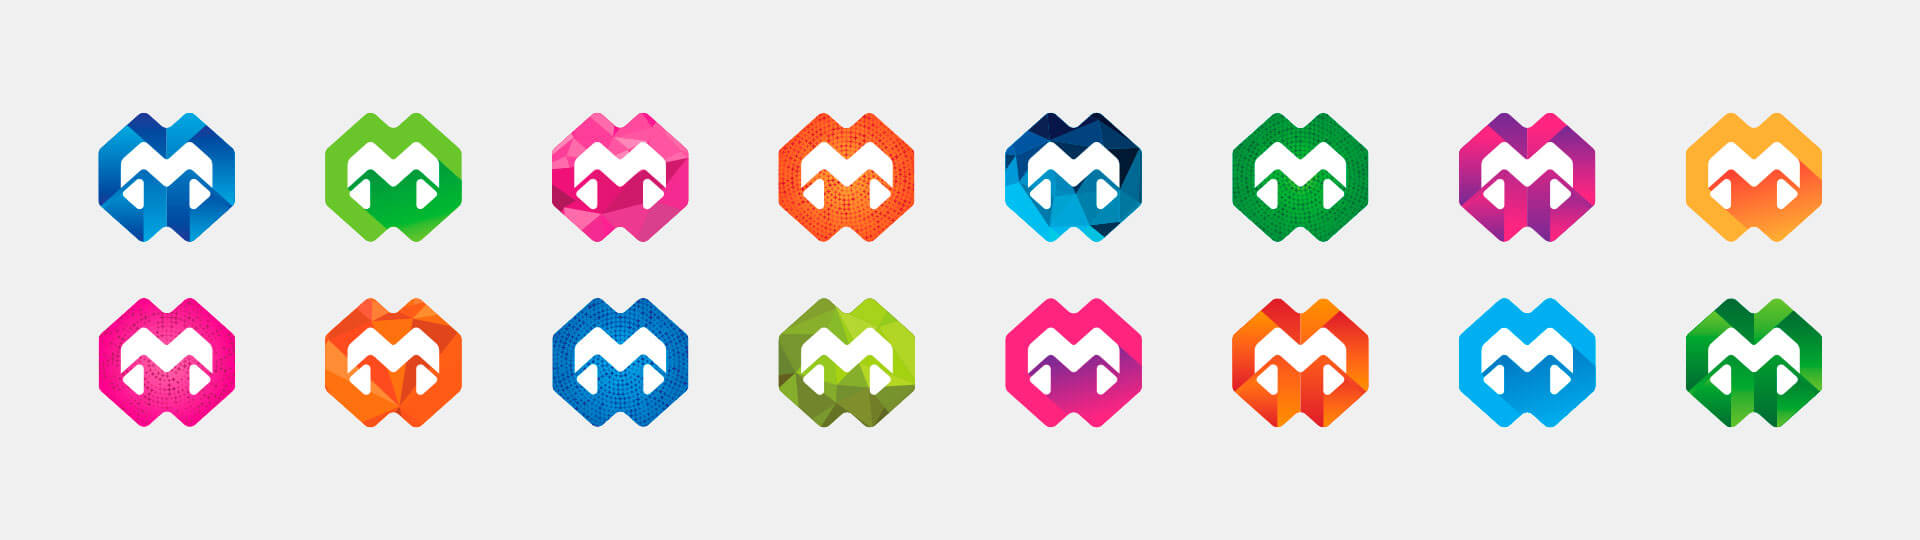 McGowans different coloured logos